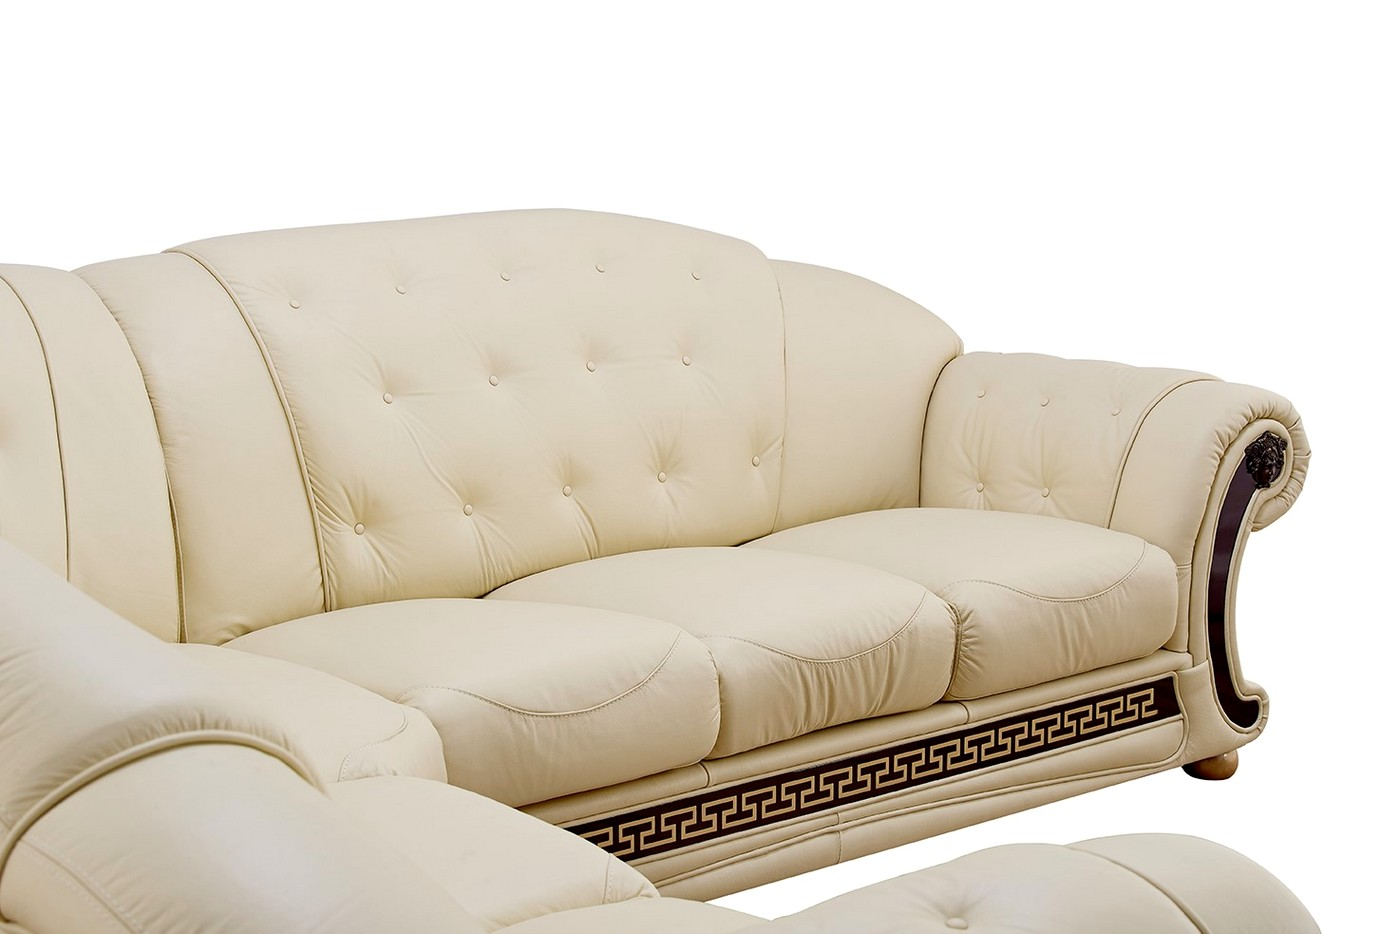 Versace living room furniture cream italian leather sofa Versace sofa